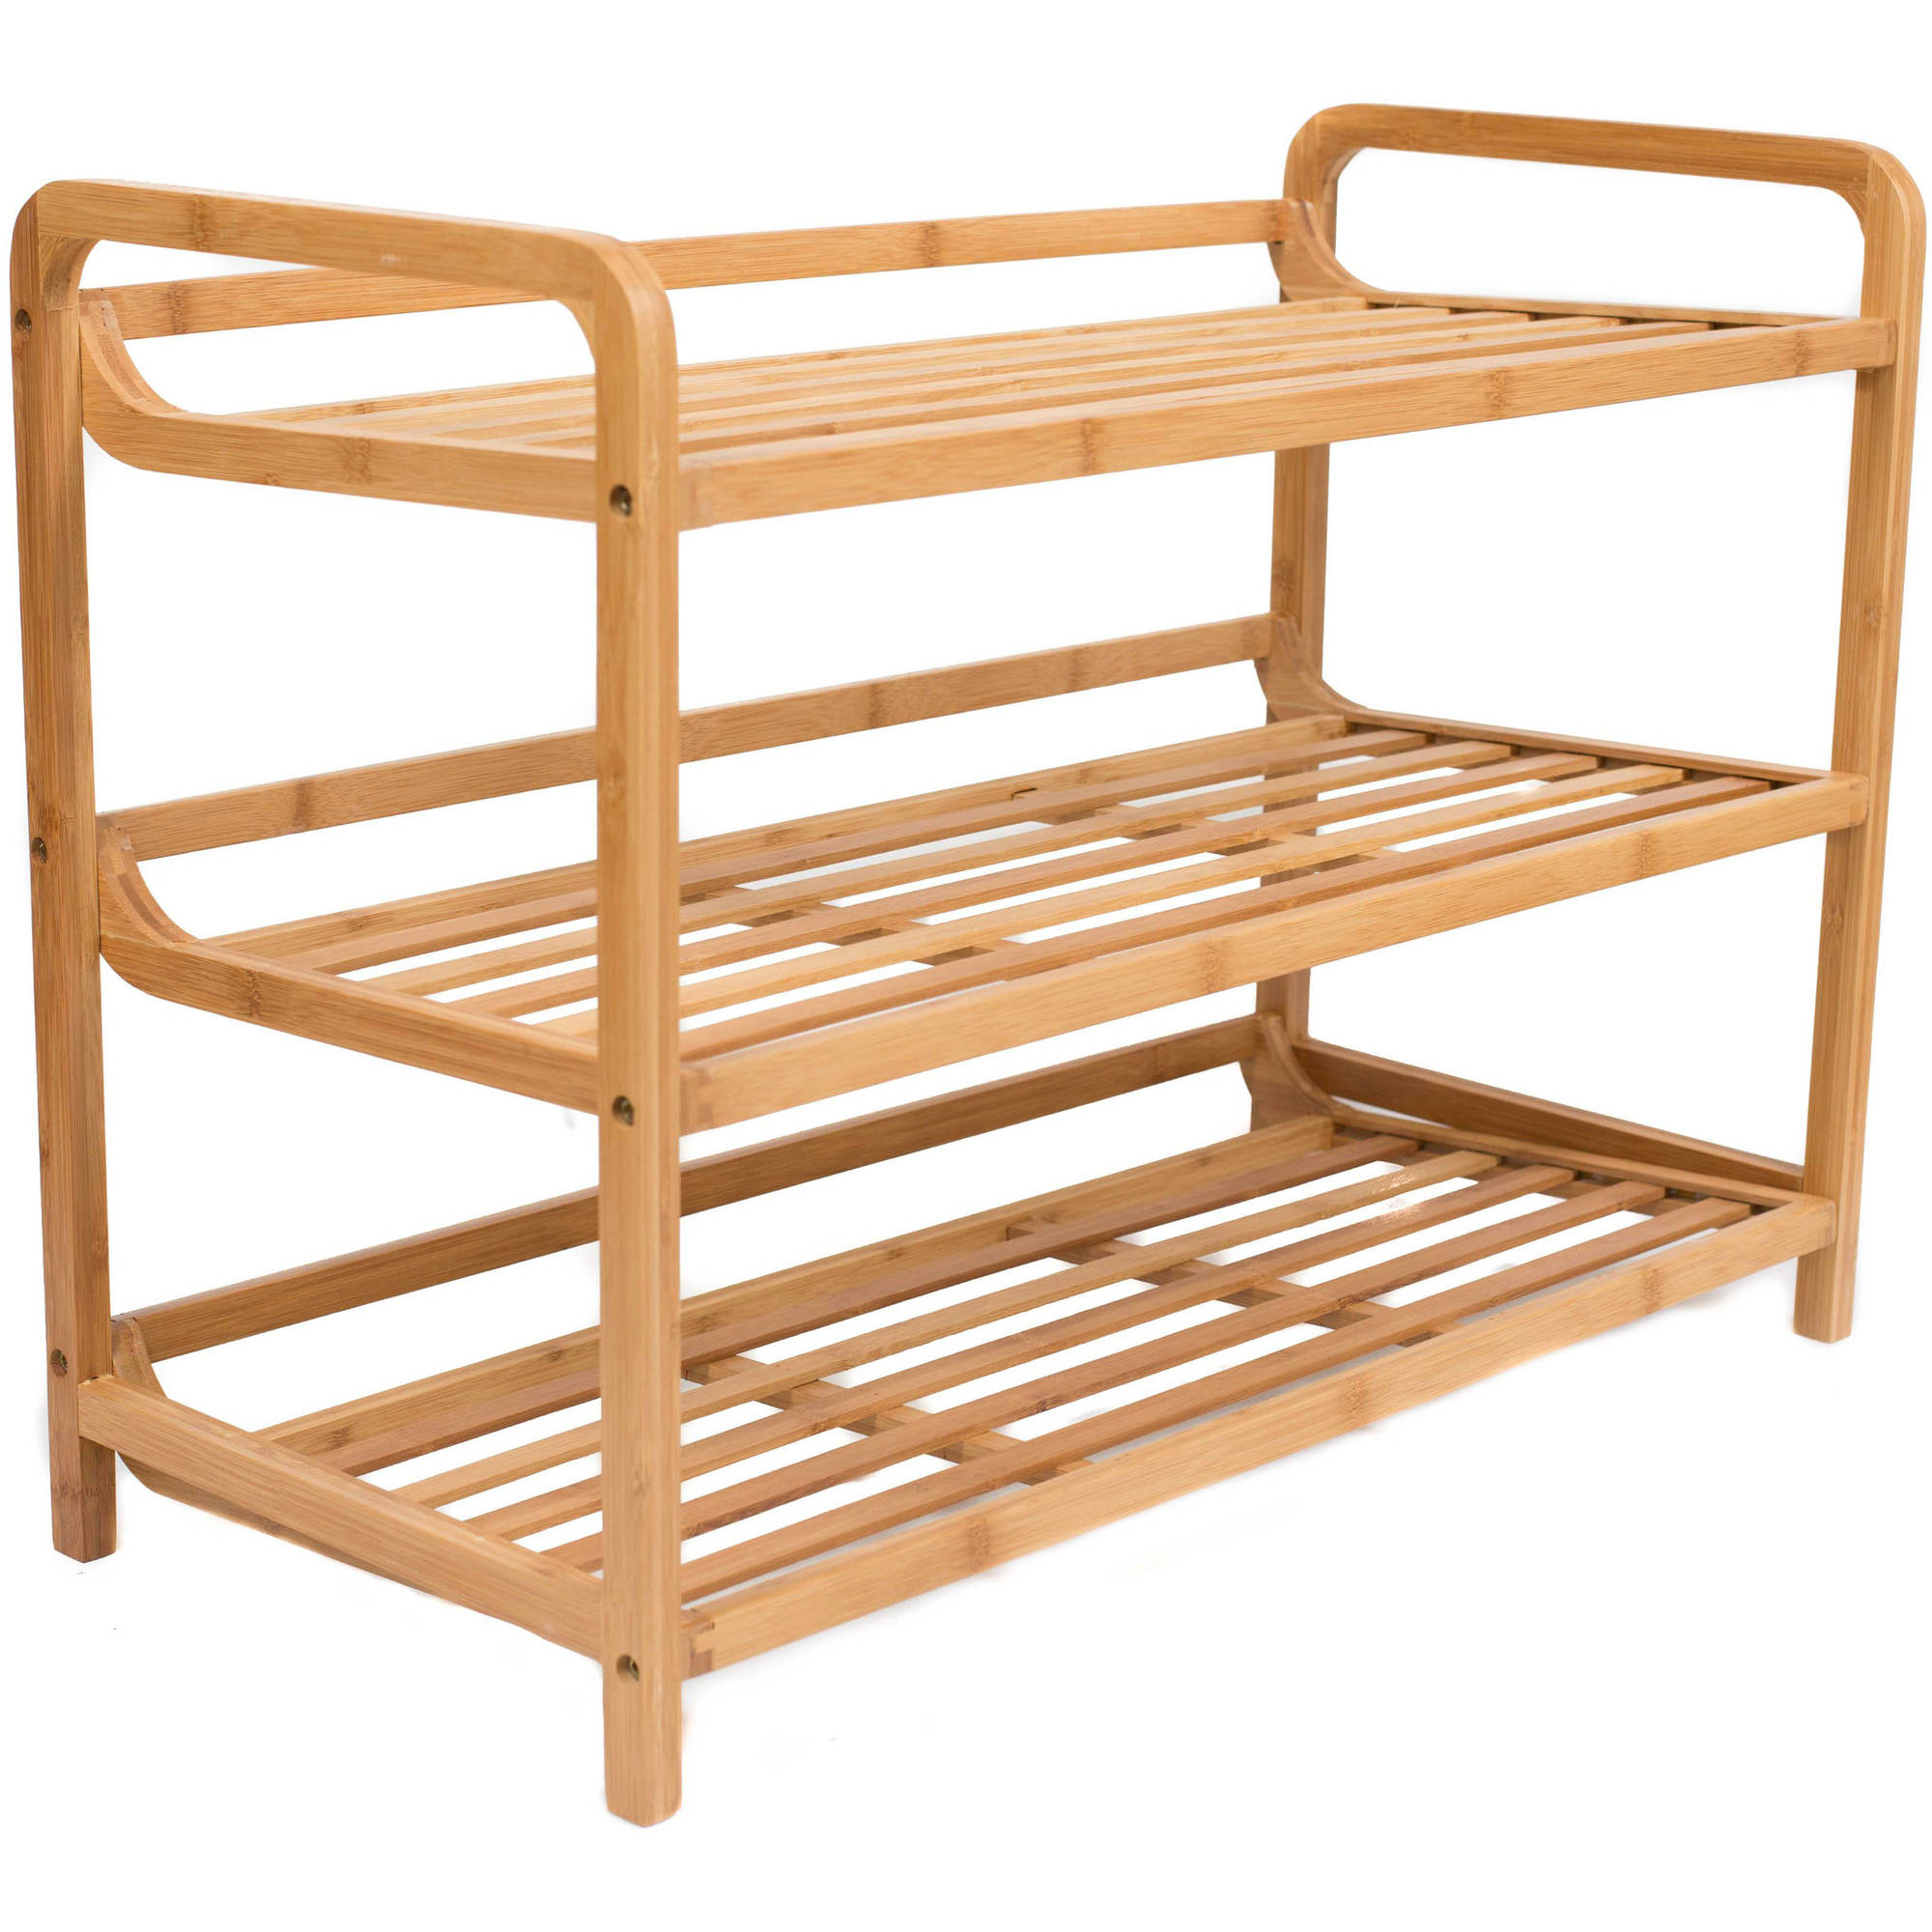 BirdRock Home 4-Tier Shoe Rack